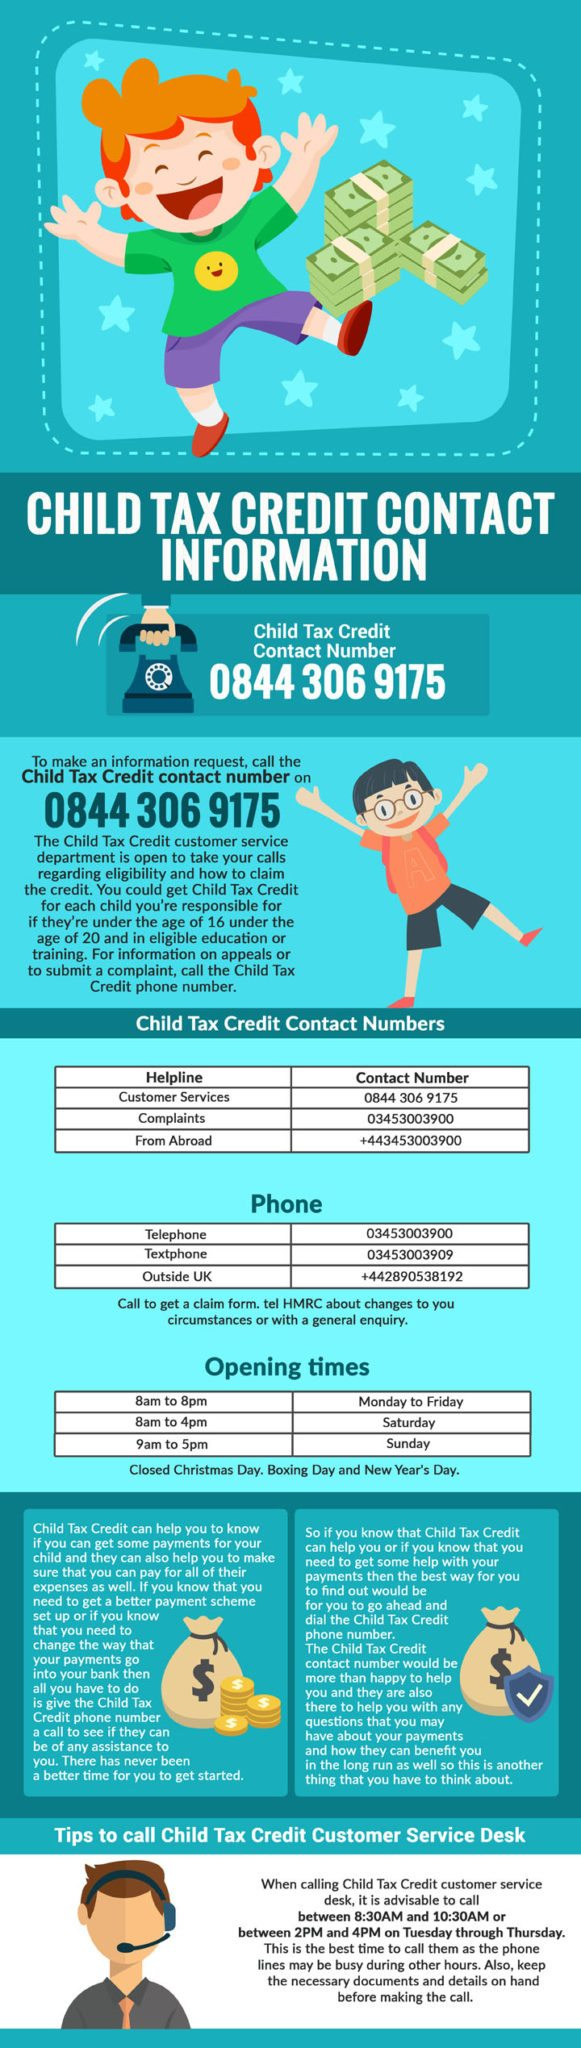 Child Tax Credit Helpline